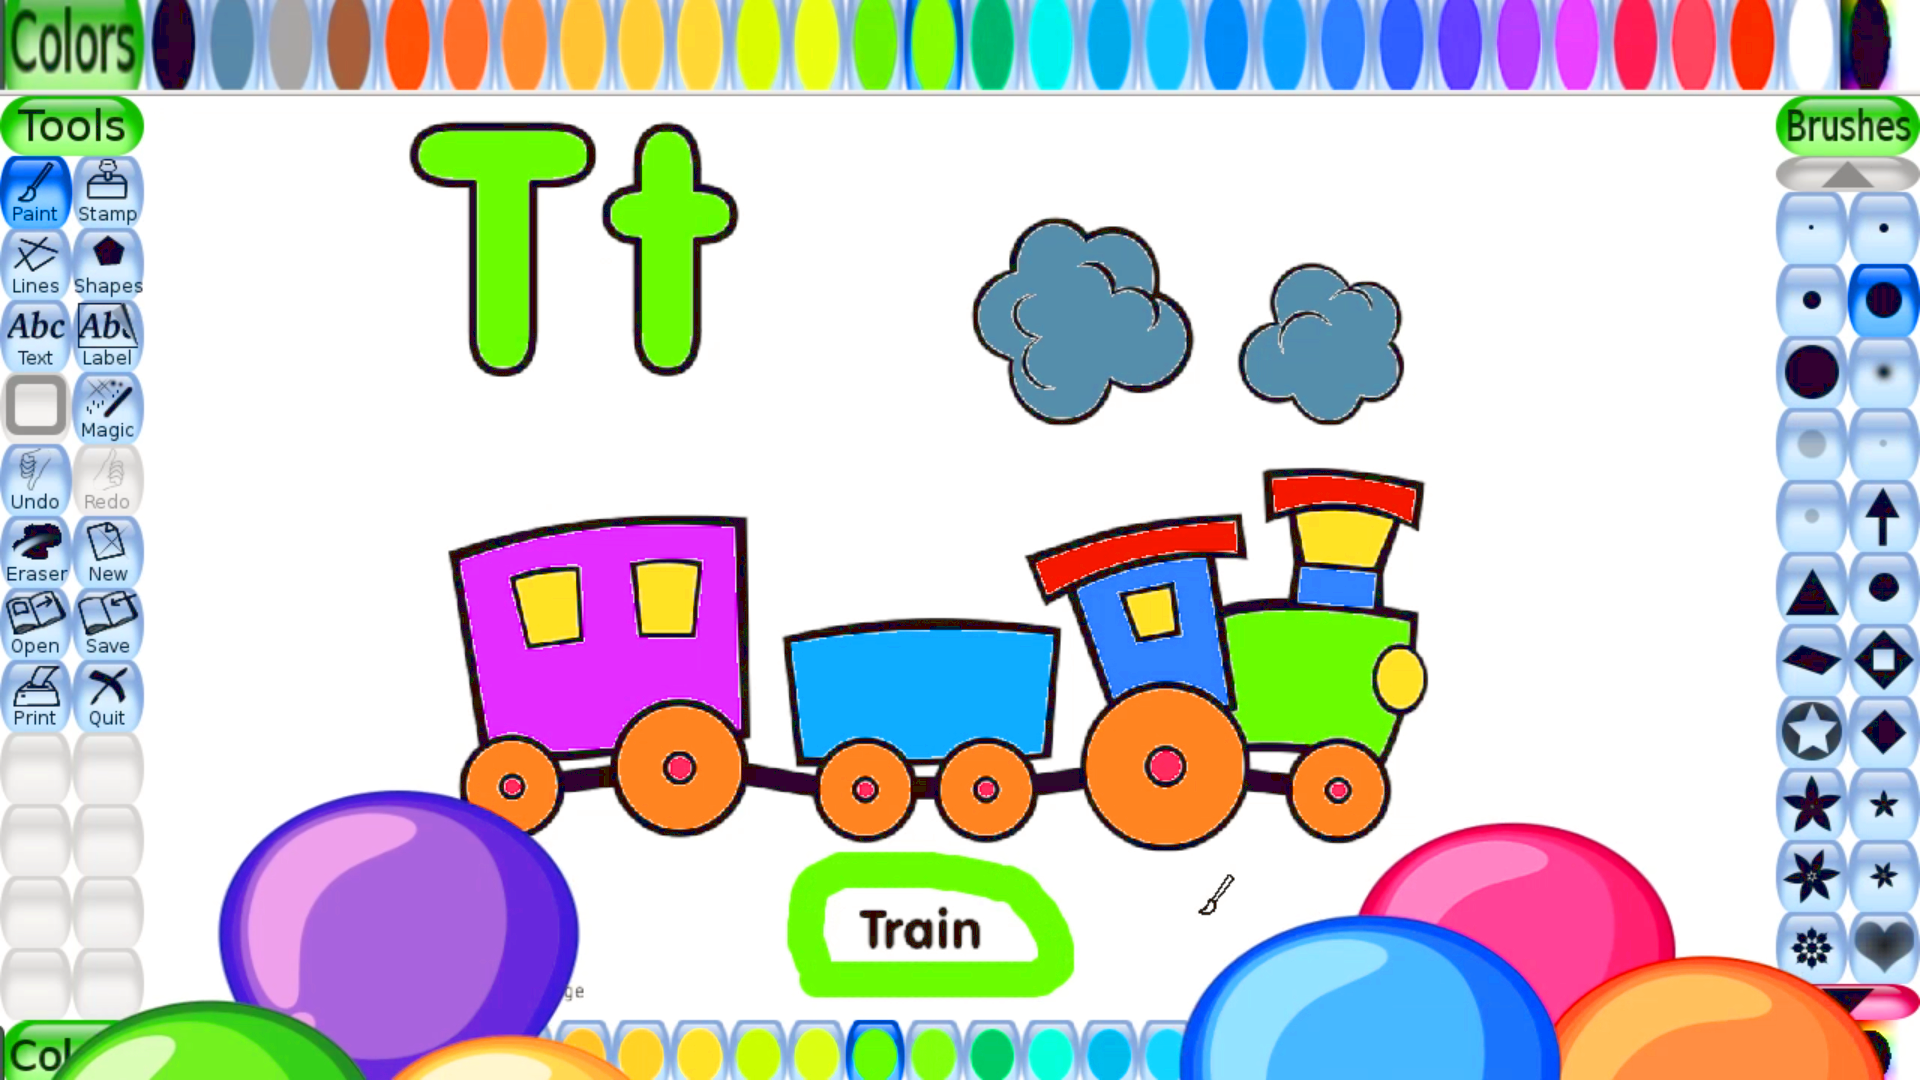 Free Coloring Pages For Kids Free Printables To Color Train And Alphabet Letter T Train C Printables Free Kids Coloring Pages For Kids Train Coloring Pages